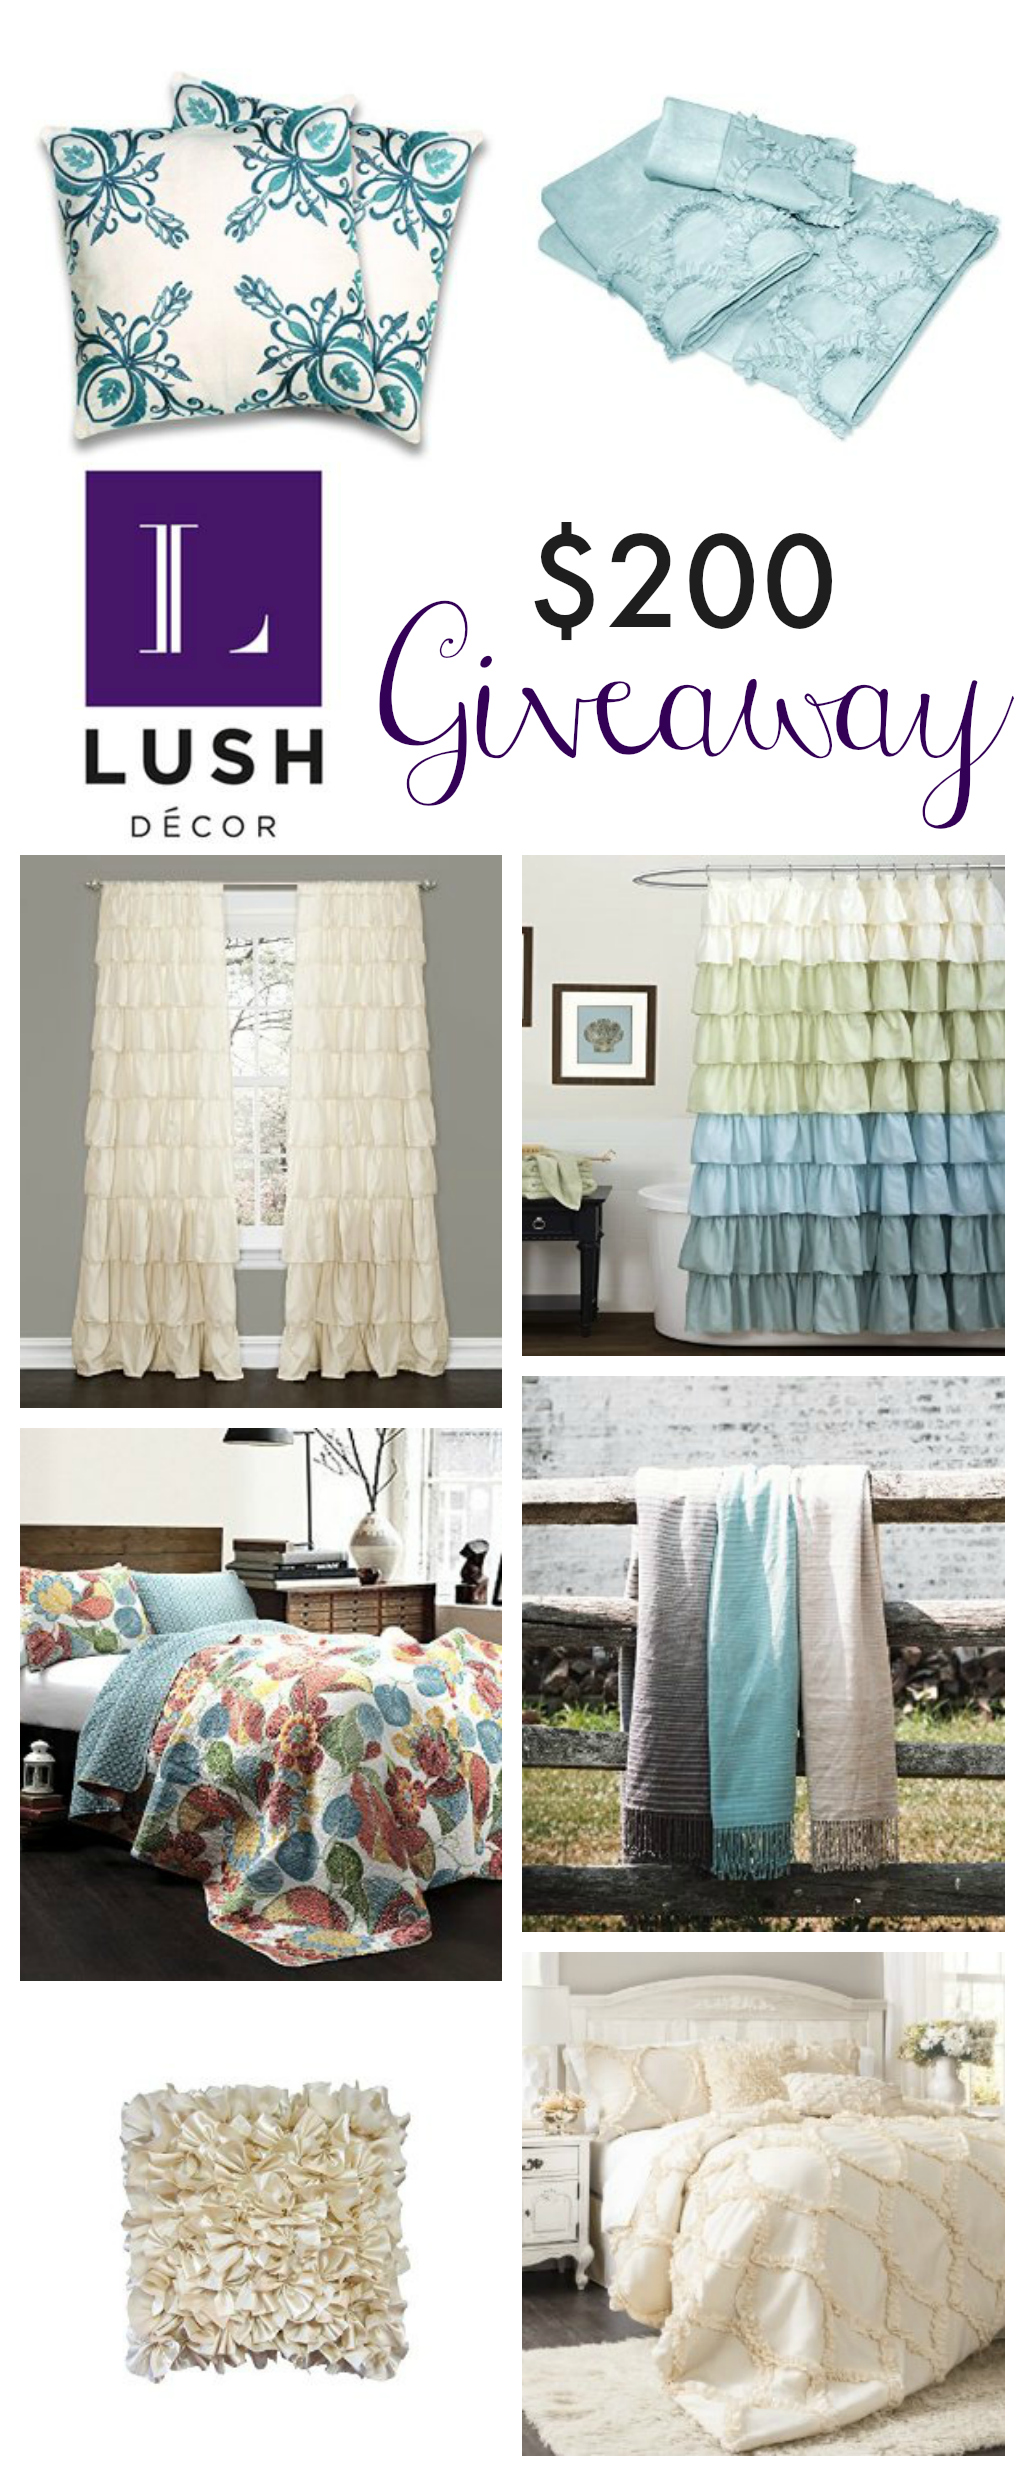 Lush Decor $200 Giveaway #win #contest #freestuff